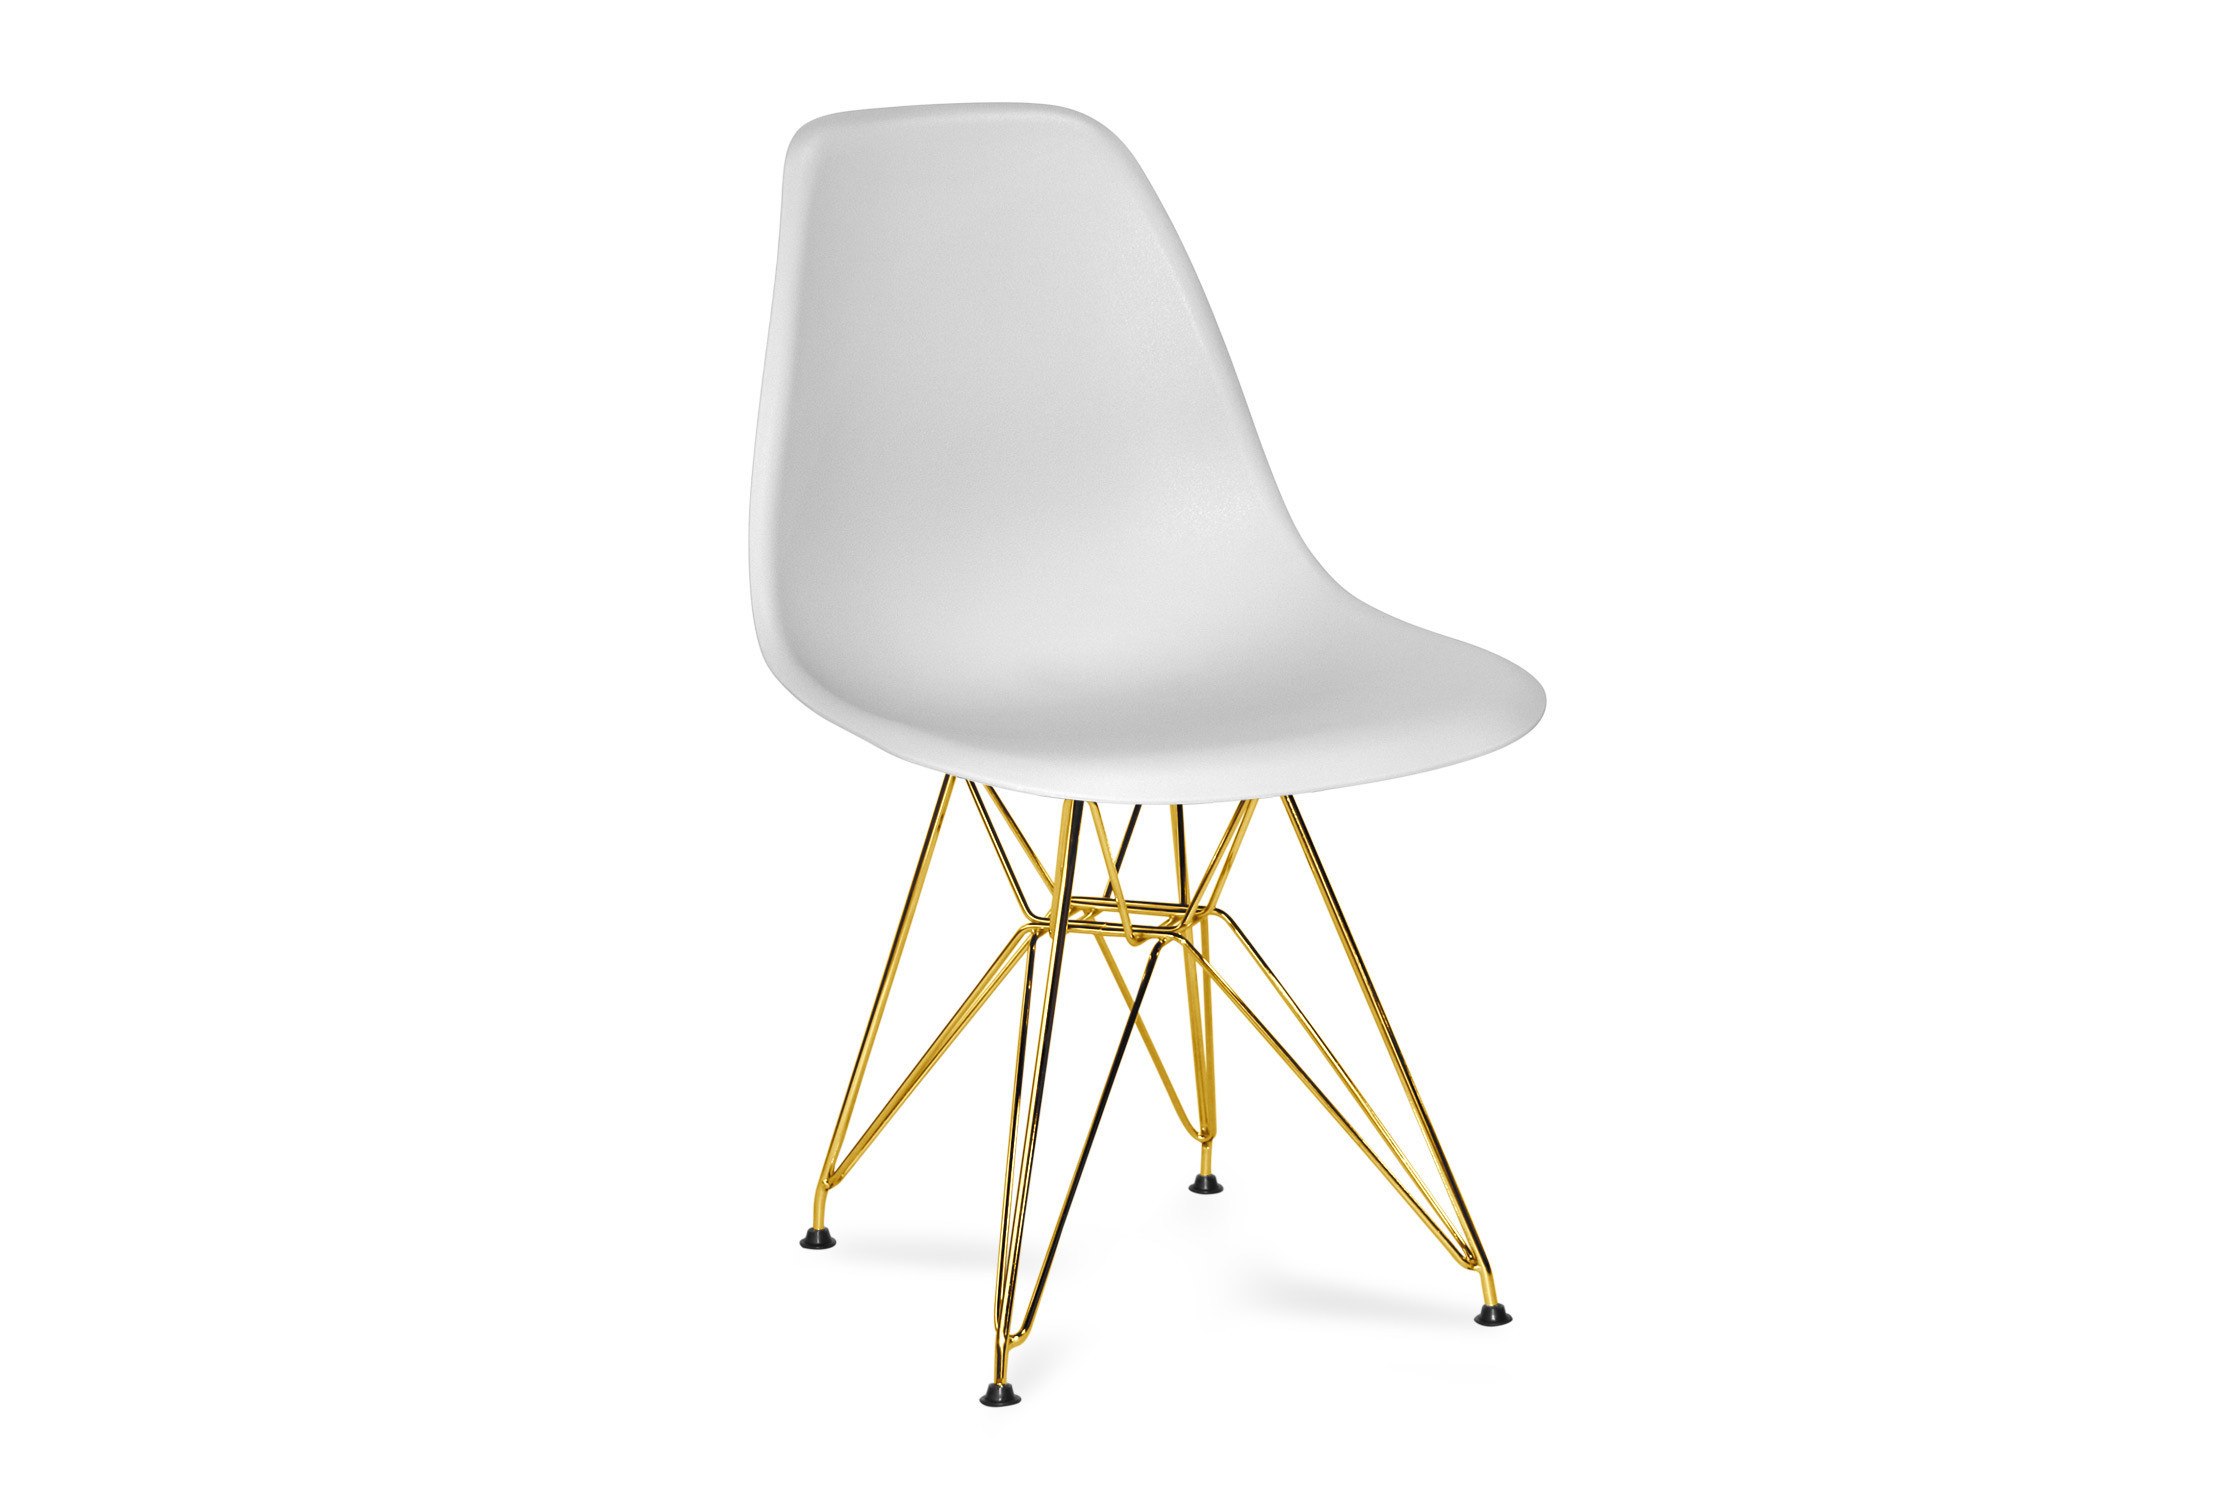 SILLA TOWER CHROME GOLD EXTRA QUALITY